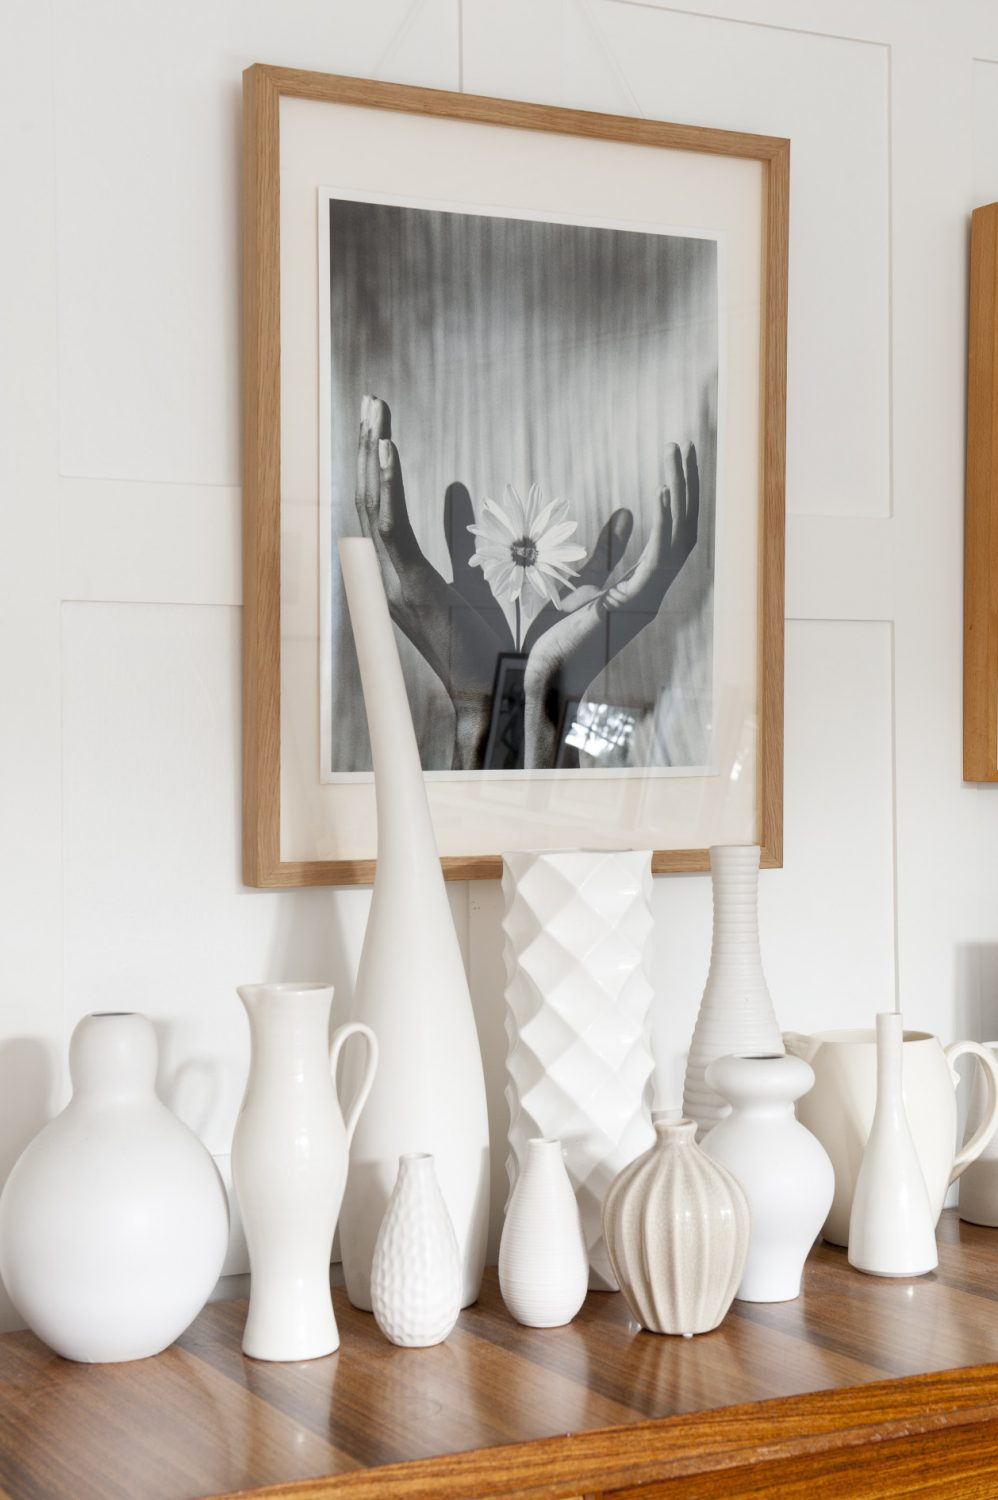 A collection of white vases